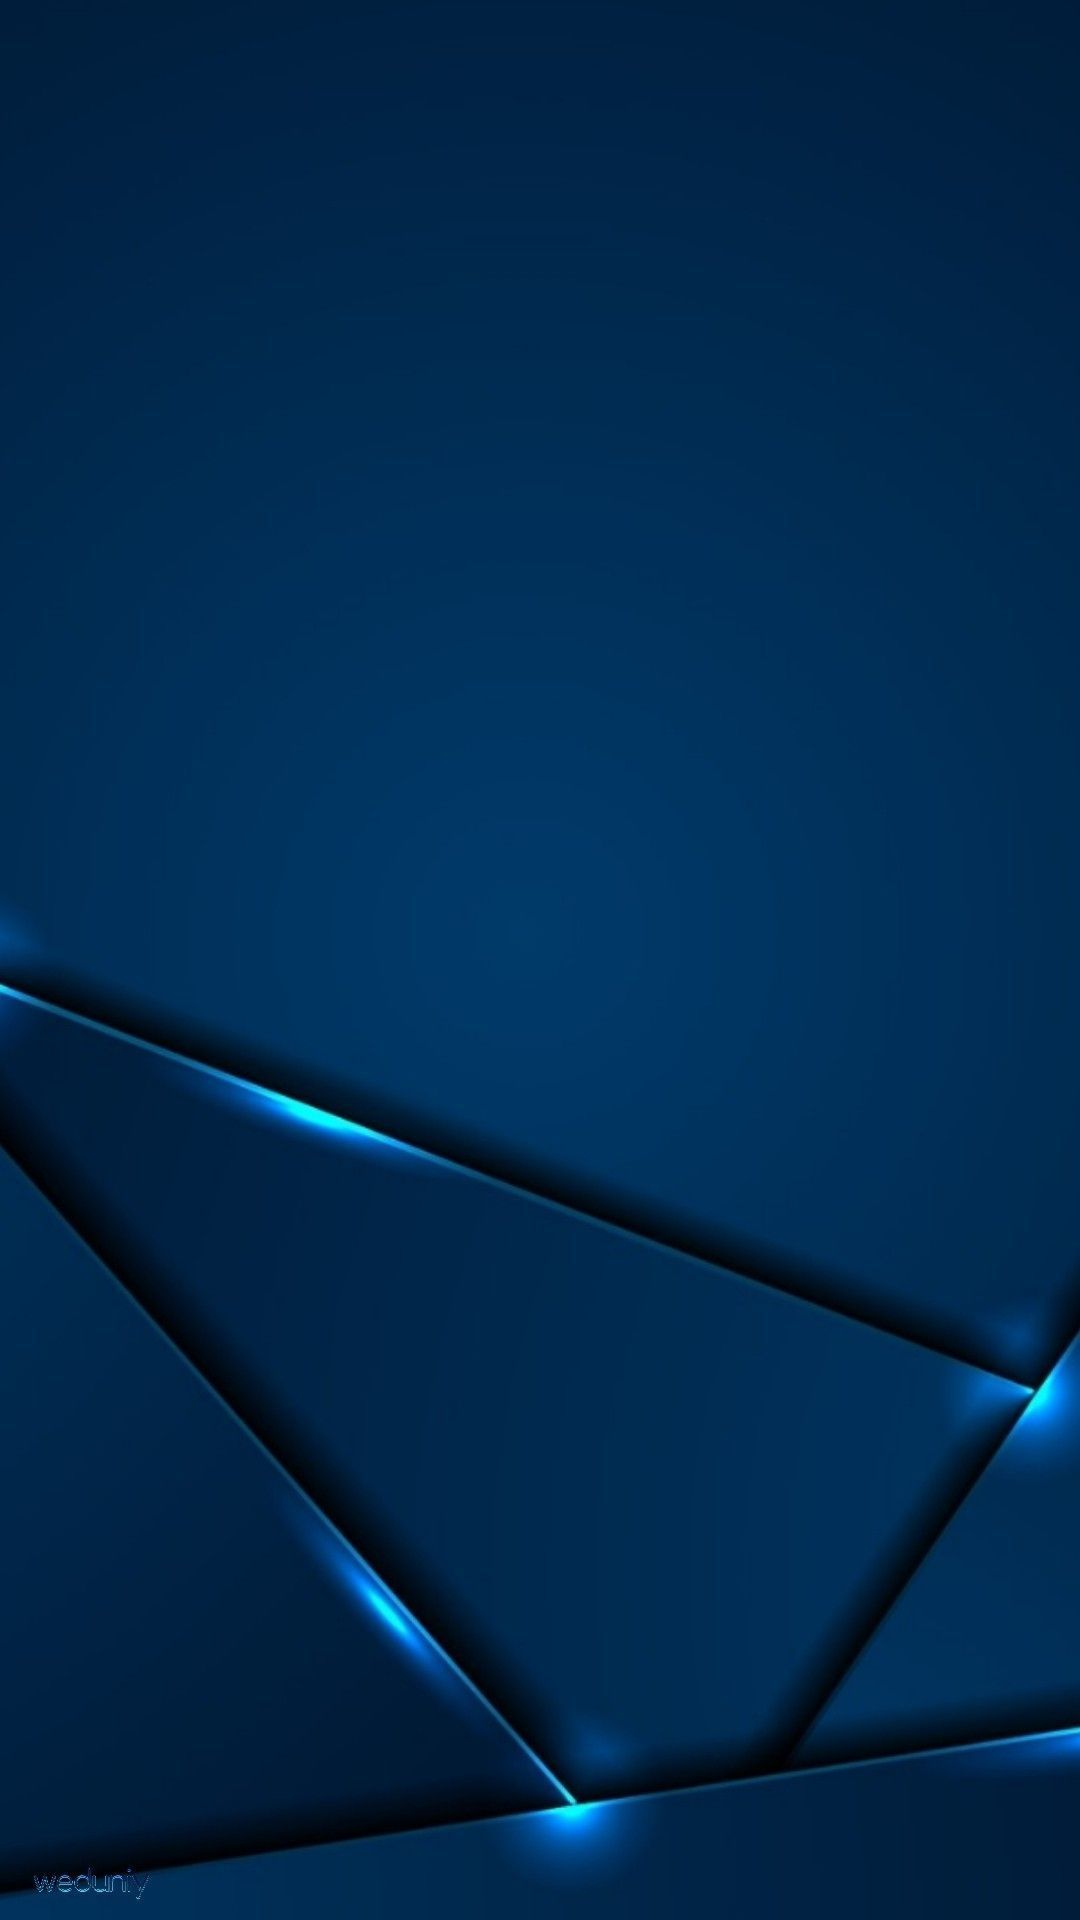 Pin By Anakpelajar Com On Blue Background And Other Wallpaper Navy Wallpaper Galaxy Phone Wallpaper Cellphone Wallpaper